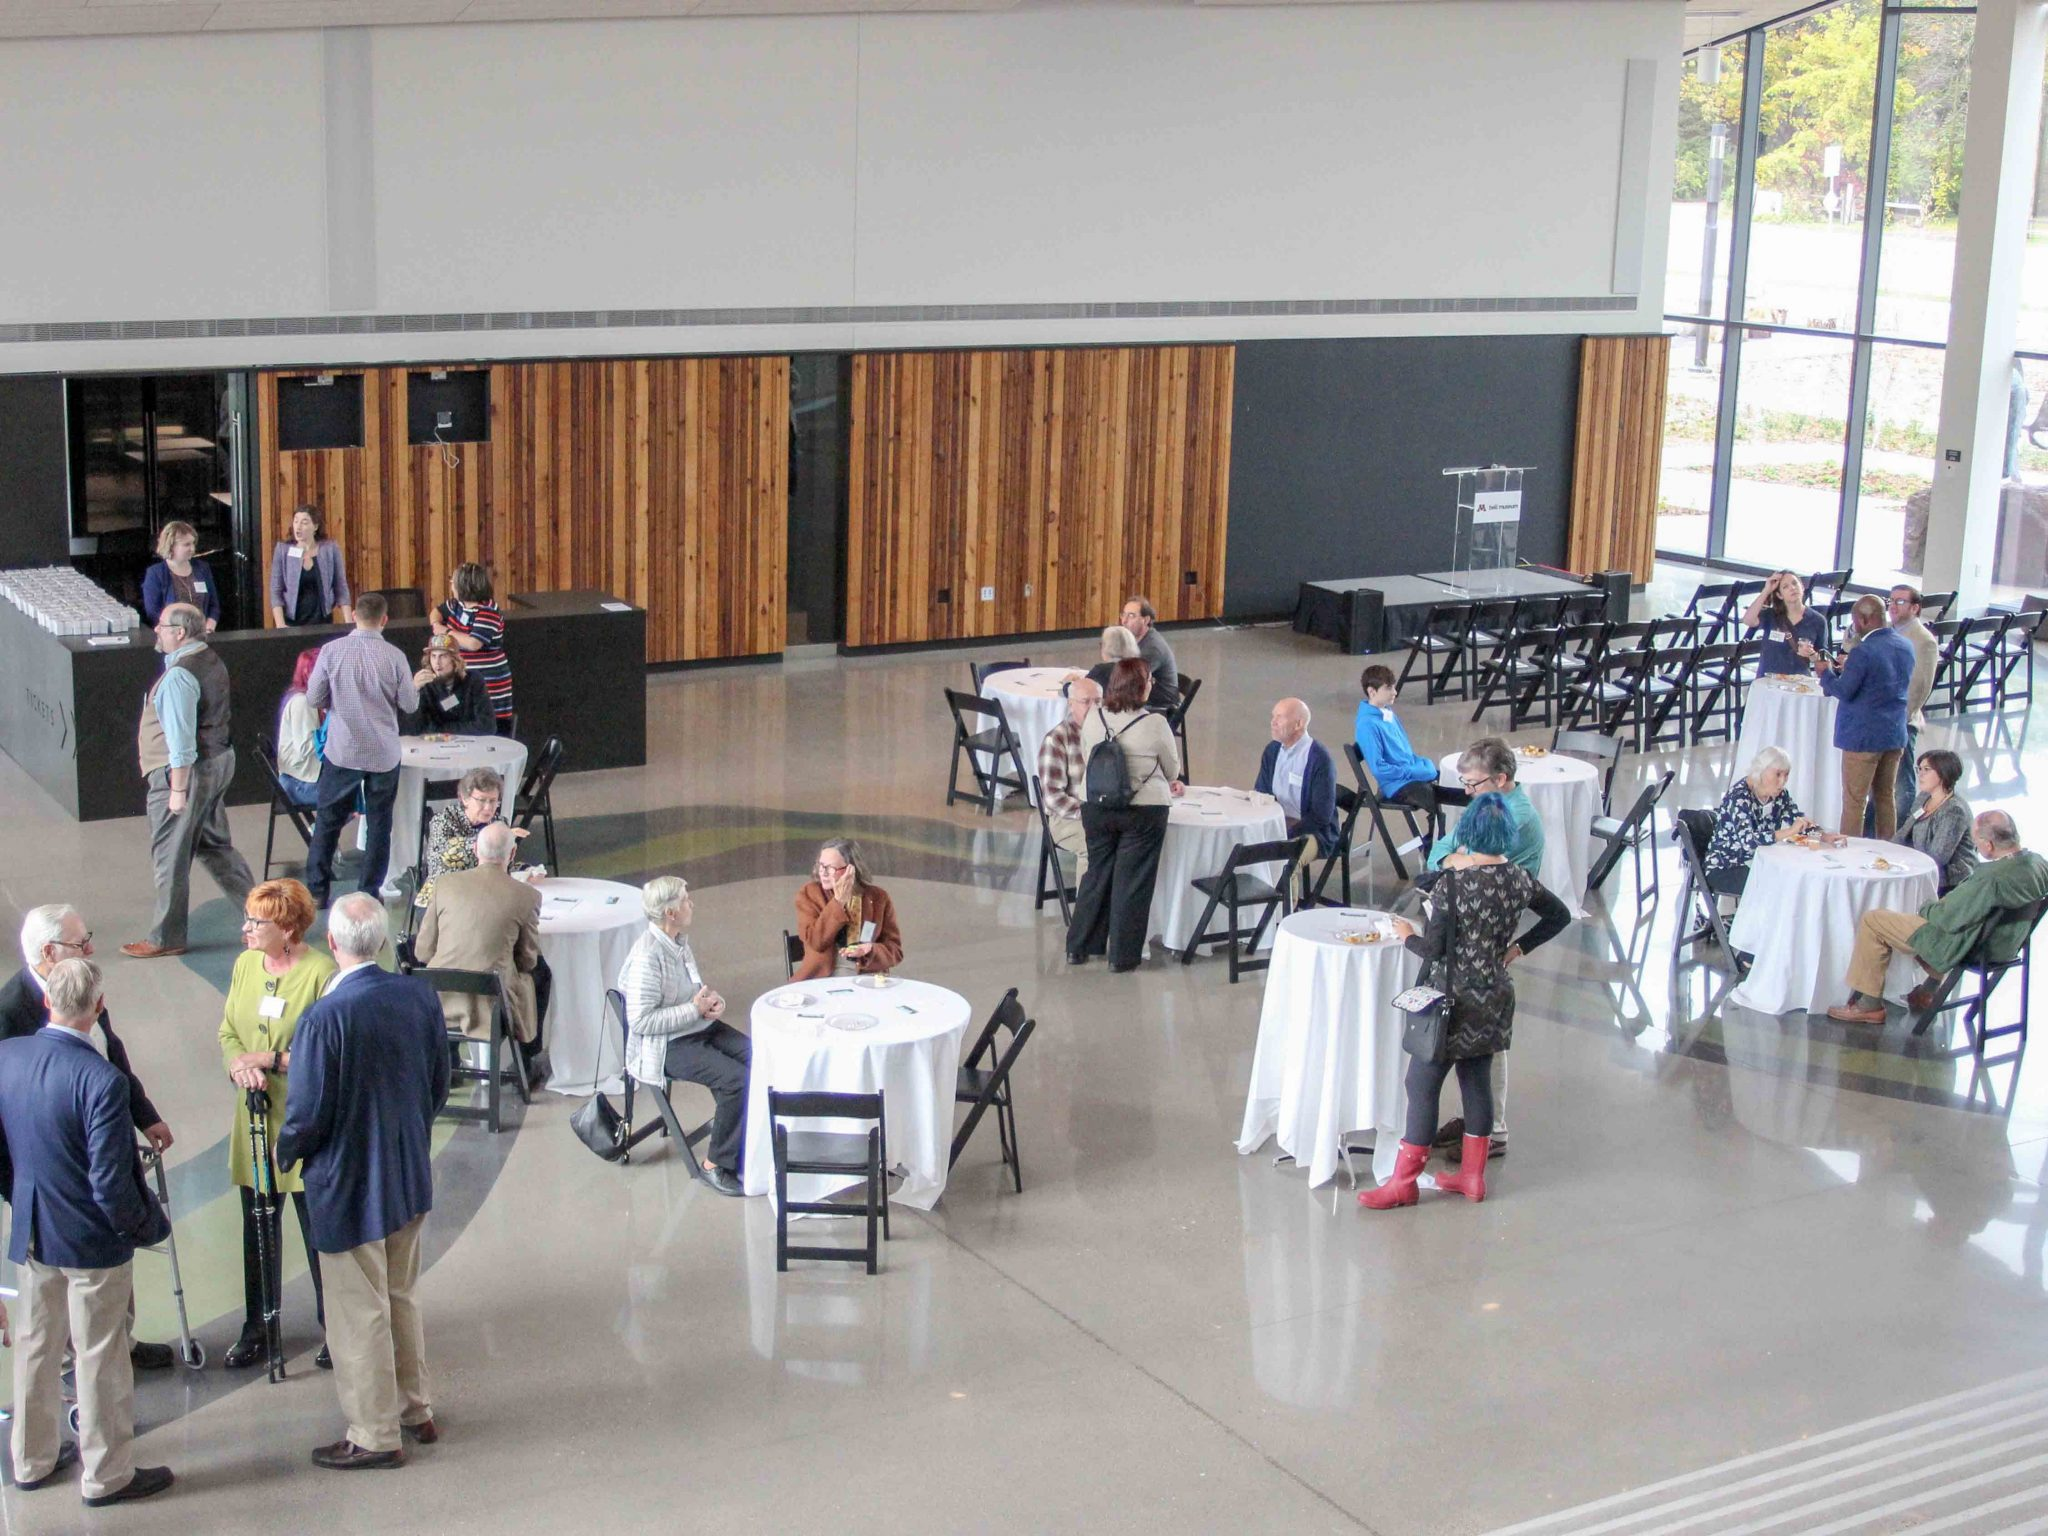 Small lecture setup in Horizon Hall, with people standing and sitting around tables